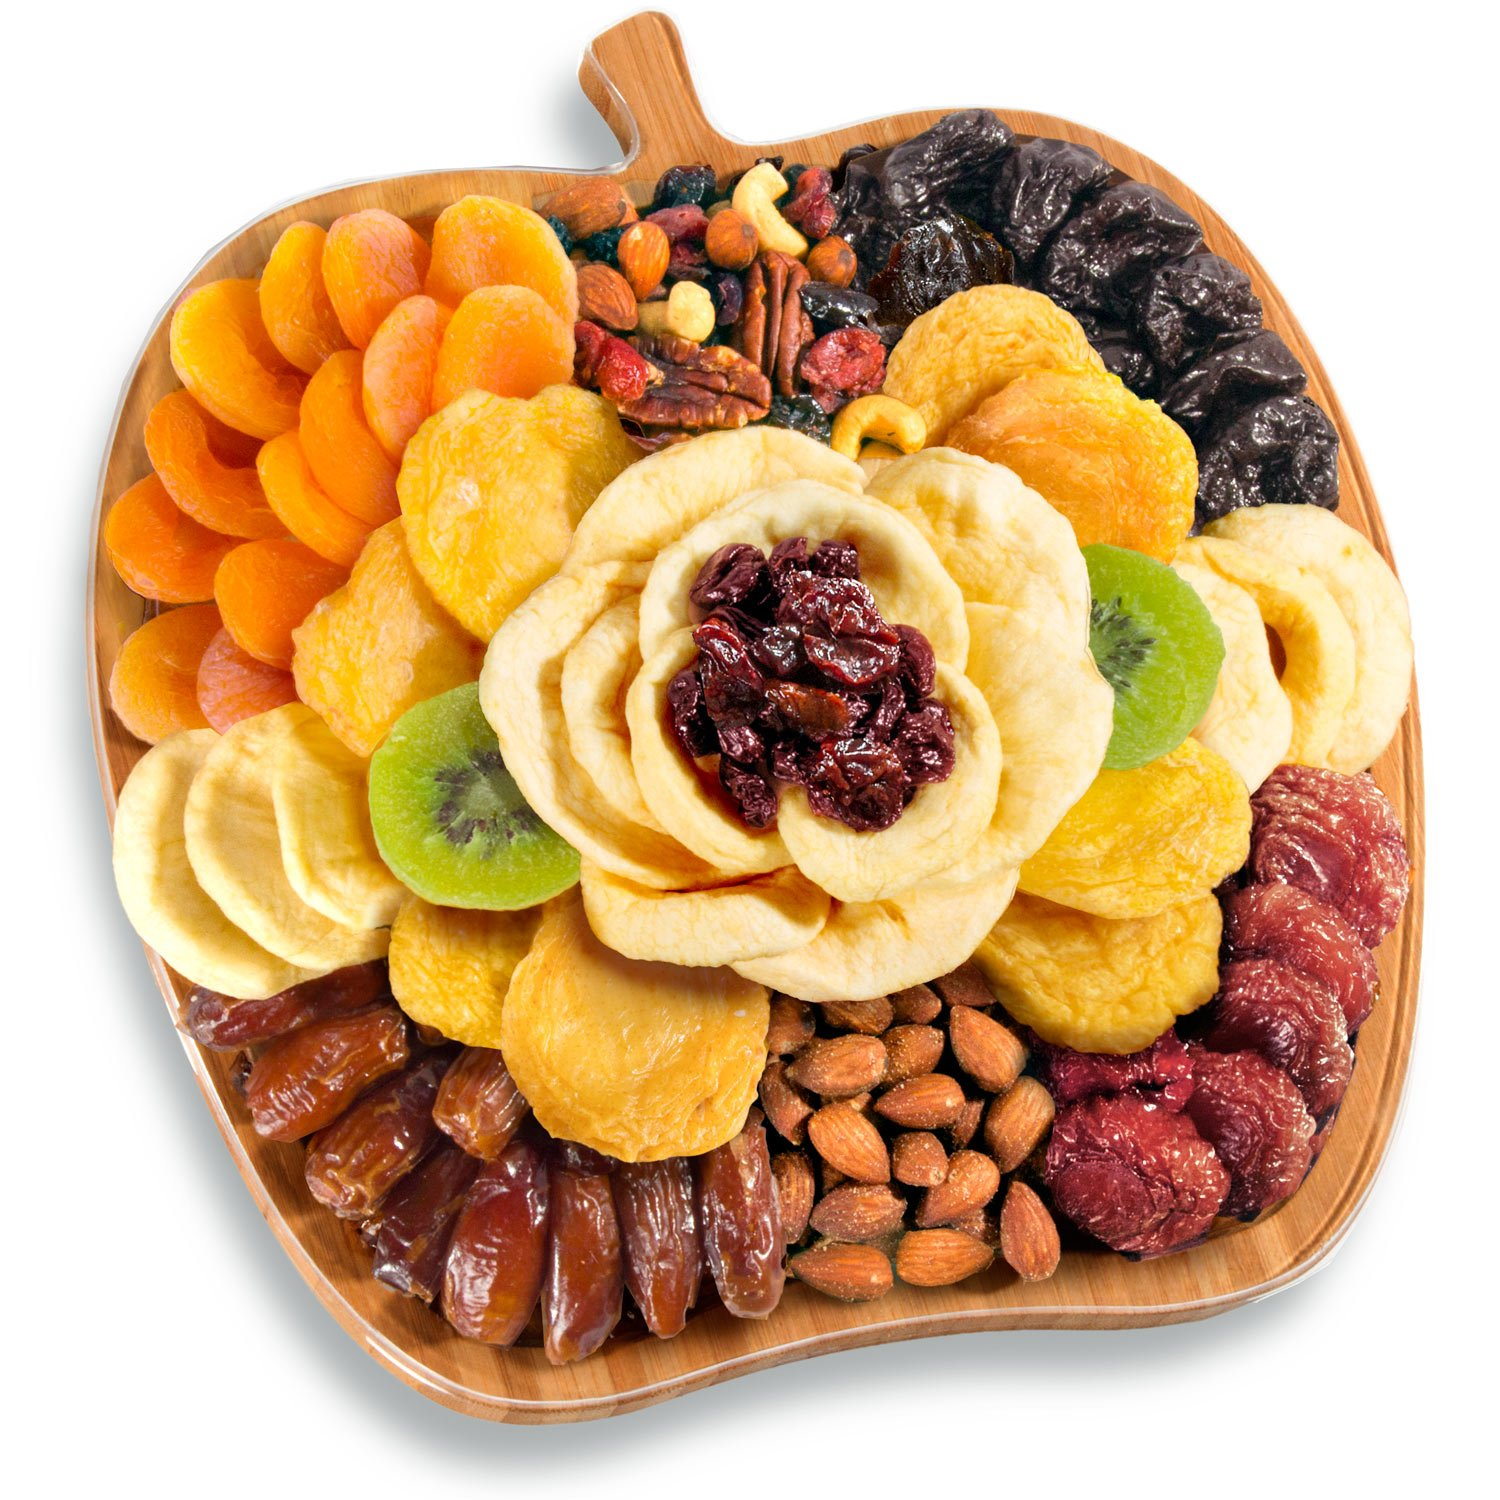 Dried Fruit and Nuts In Bamboo Apple Shape Serving Tray by Golden State Fruit (Image #1)